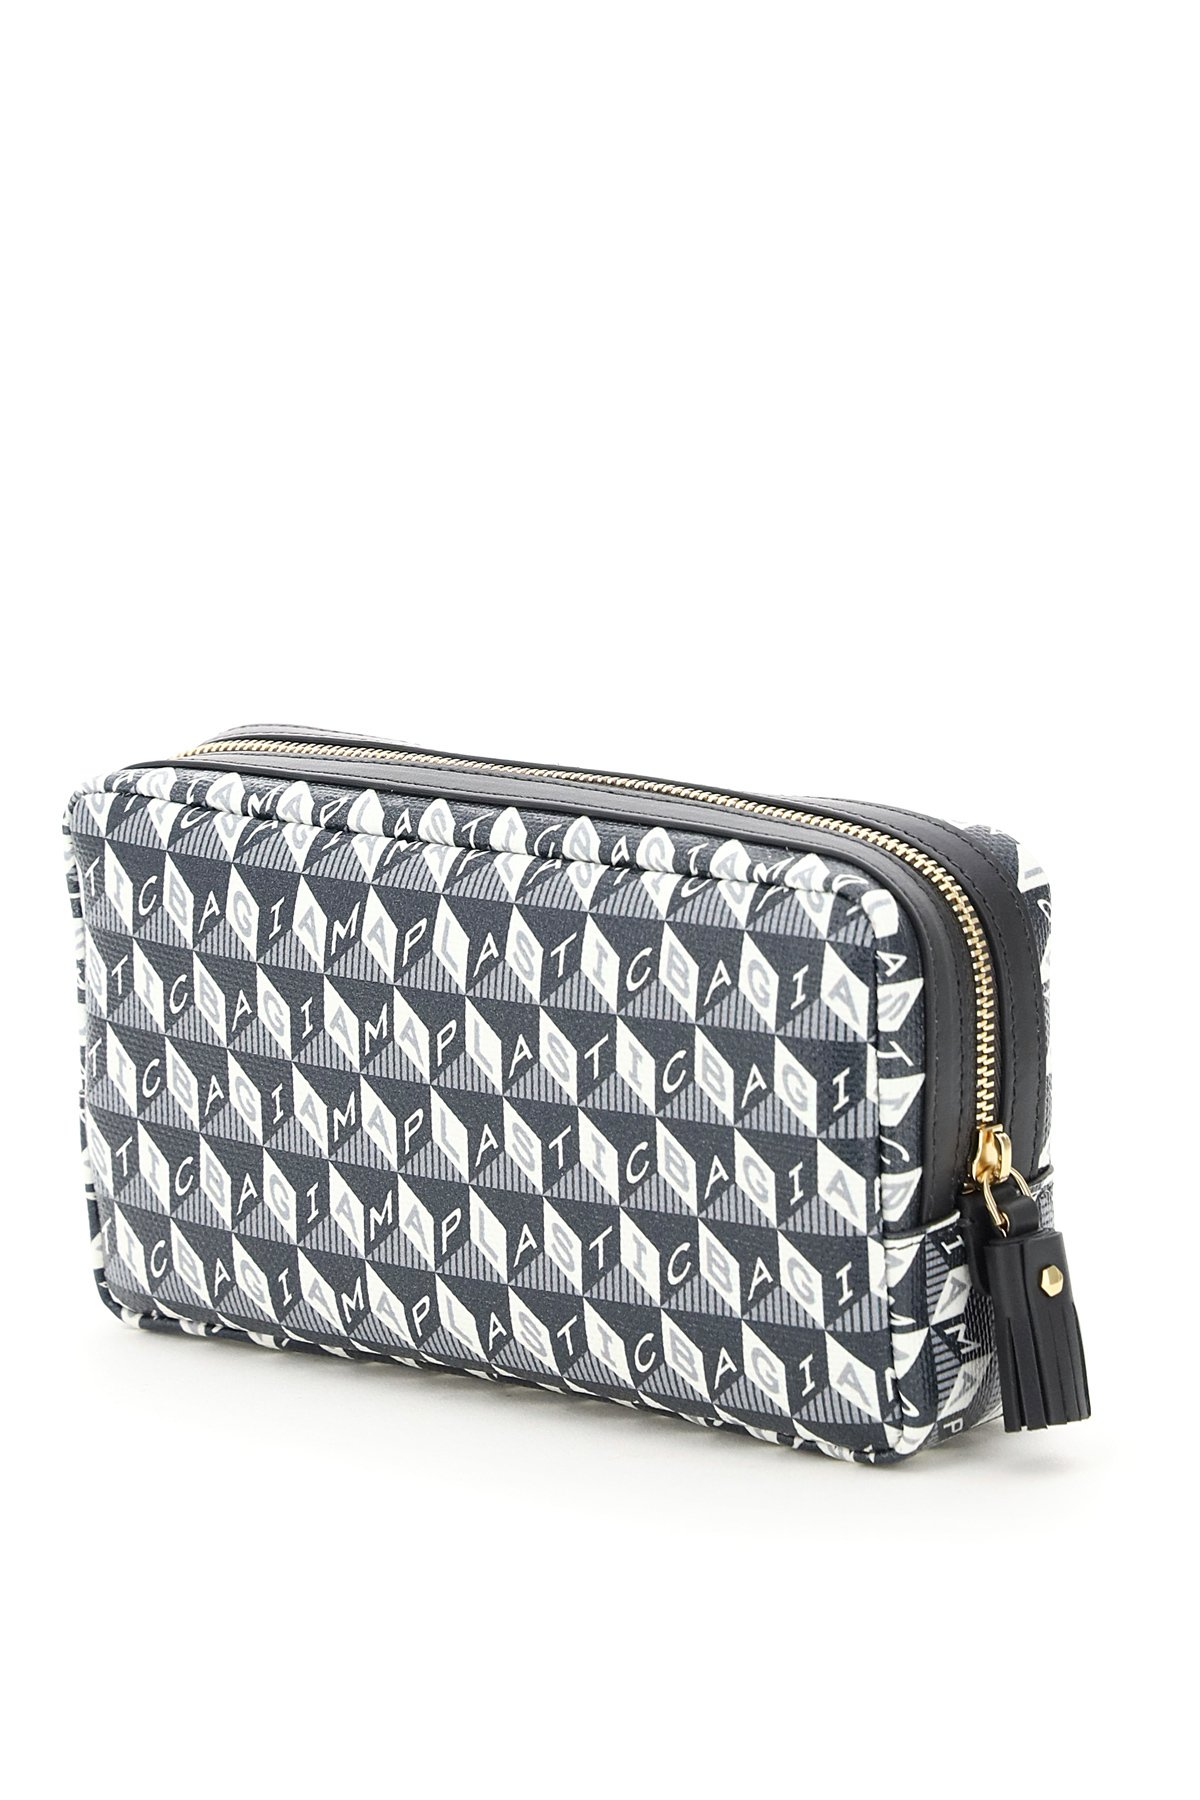 Anya hindmarch pouch i am a plastic bag important things